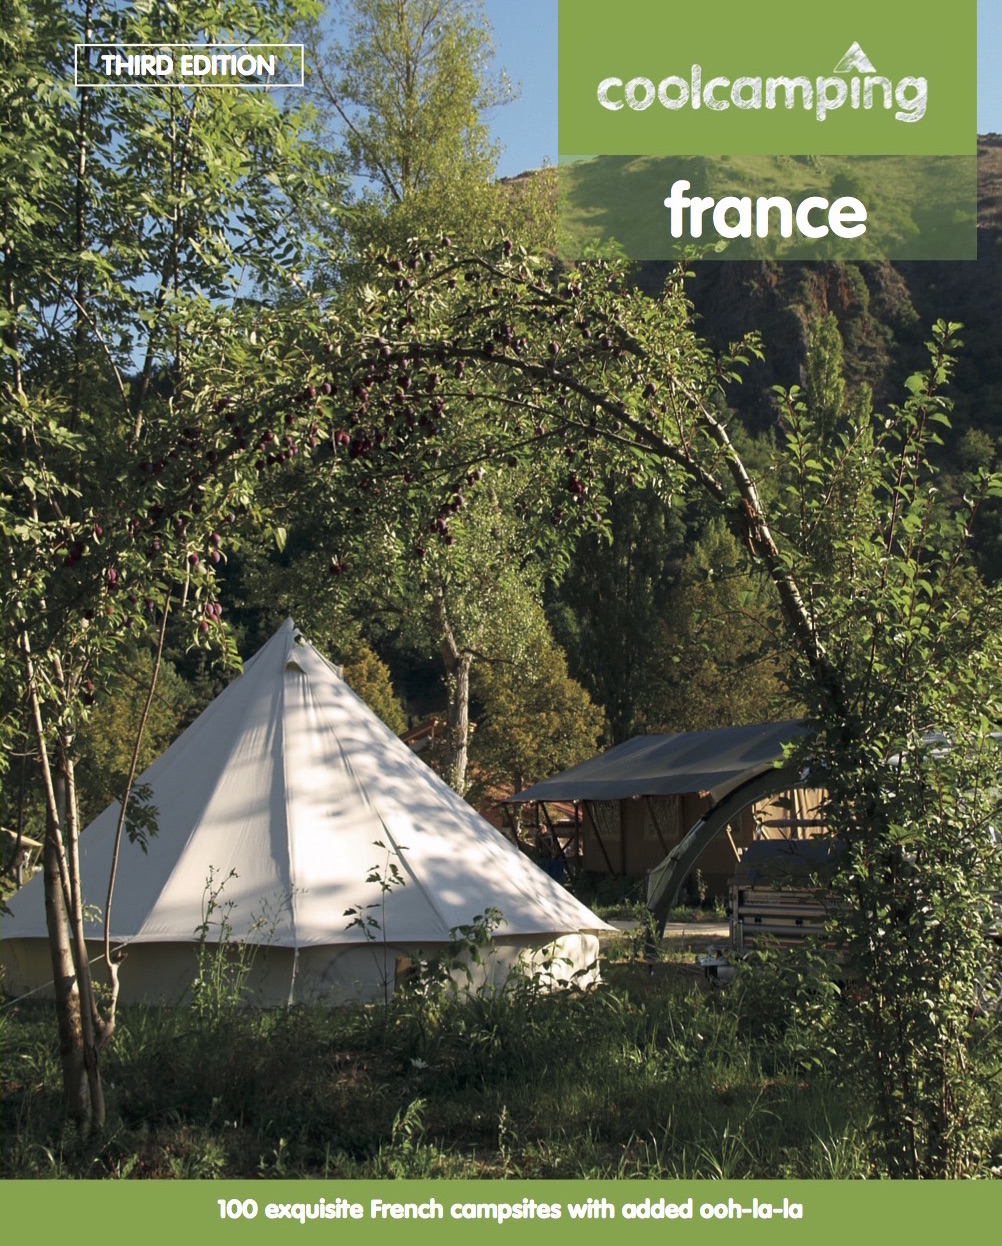 cool-camping-france-james-warner-smith